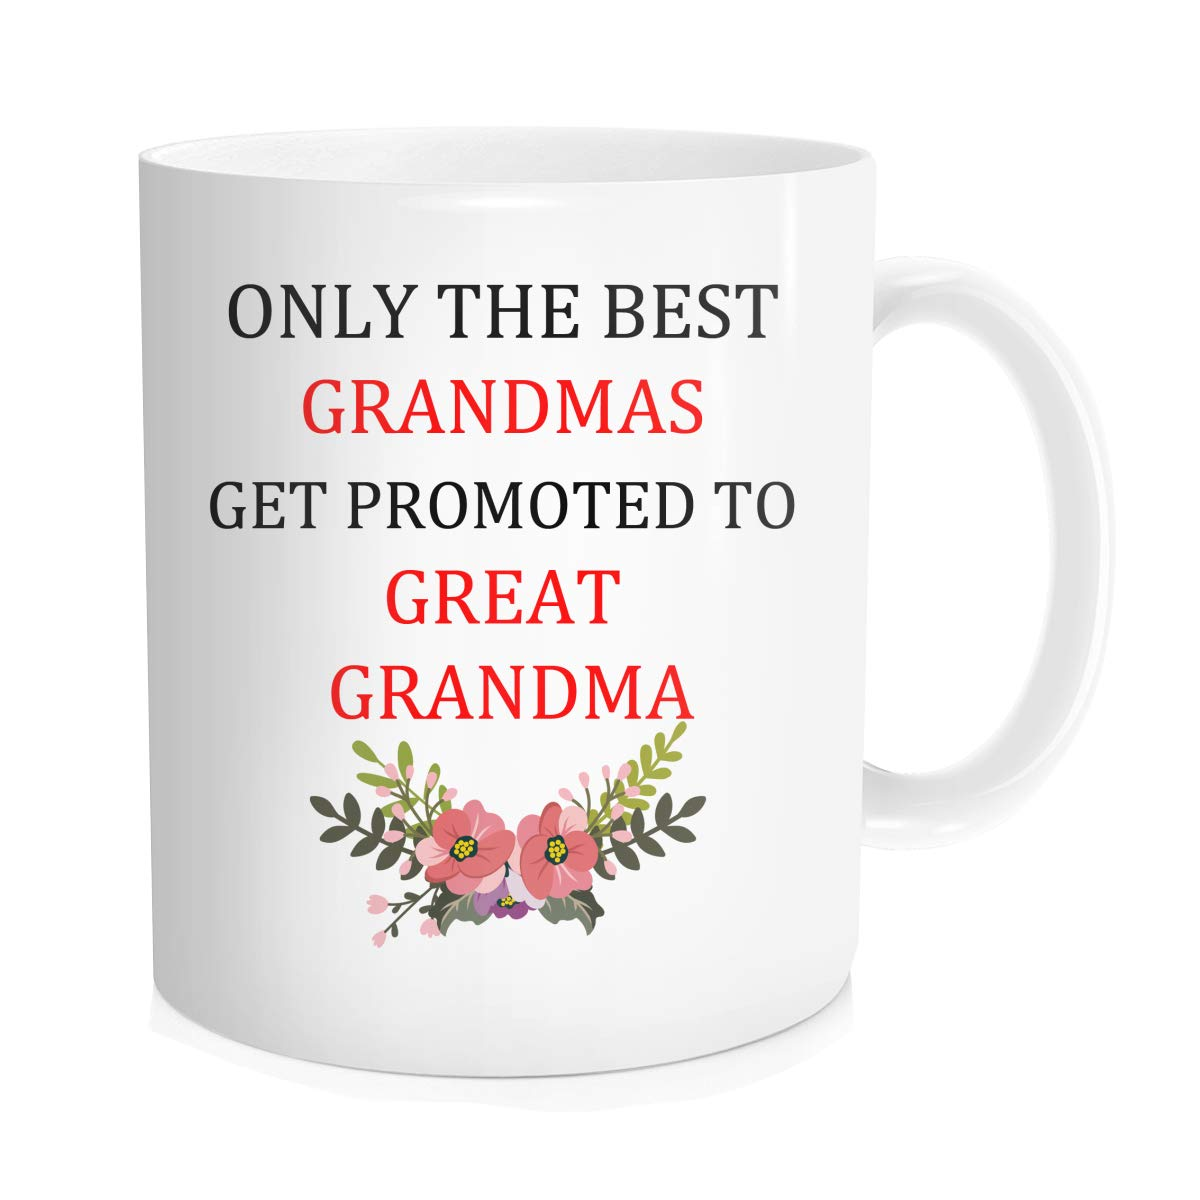 Baby Reveal Gift For Great-Grandmother to be - Only The Best Grandmas Get Promoted To Great Grandma, New Mom Pregnancy Surprise Announcement, Baby Shower Party - Coffee Mug White Ceramic 11 OZ